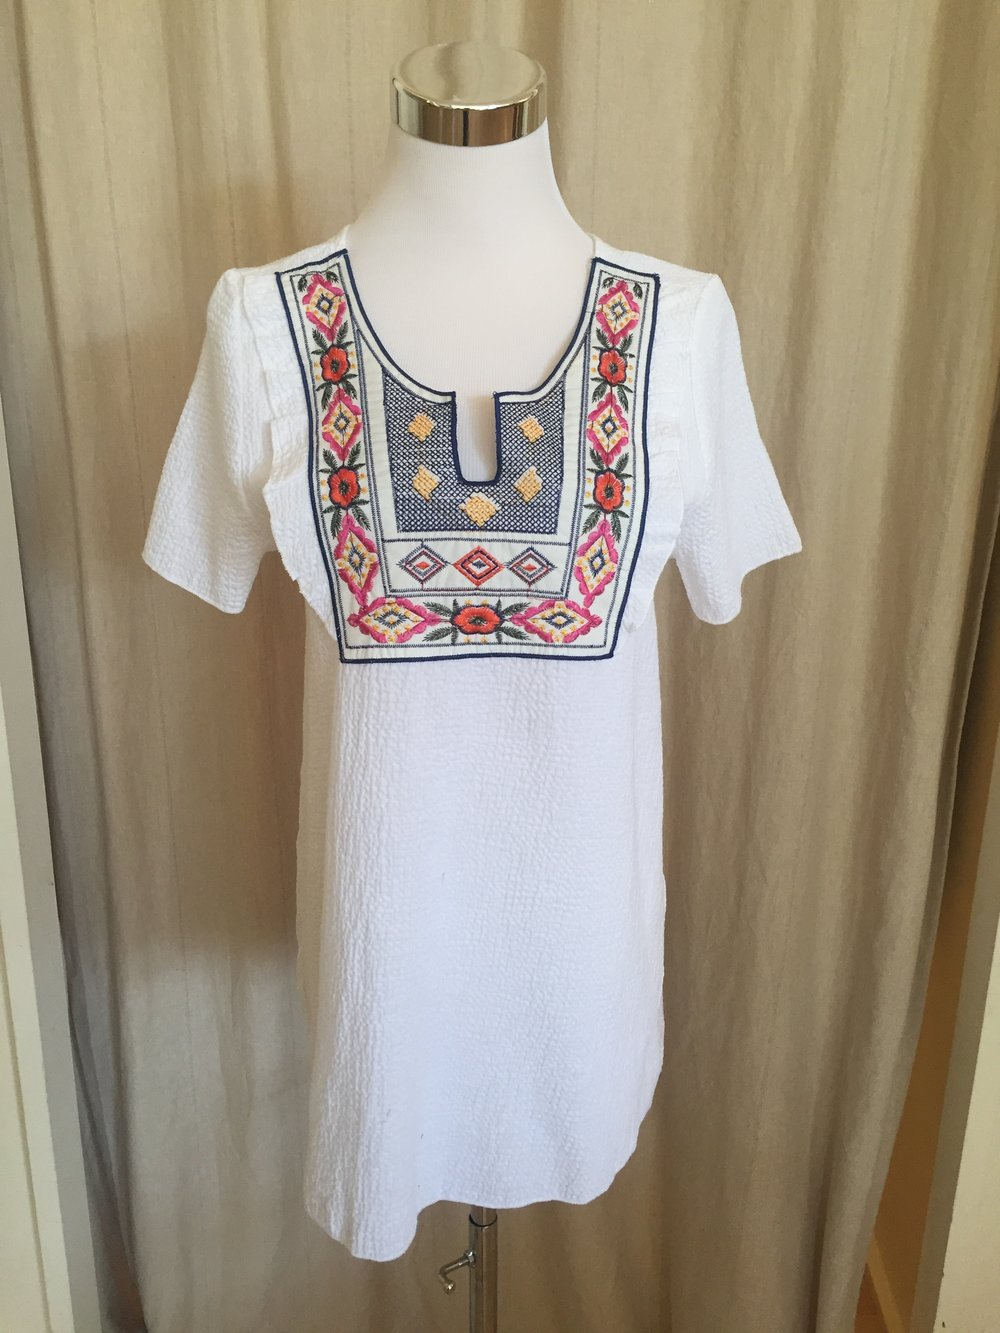 Embroidered Yoke Top, $38